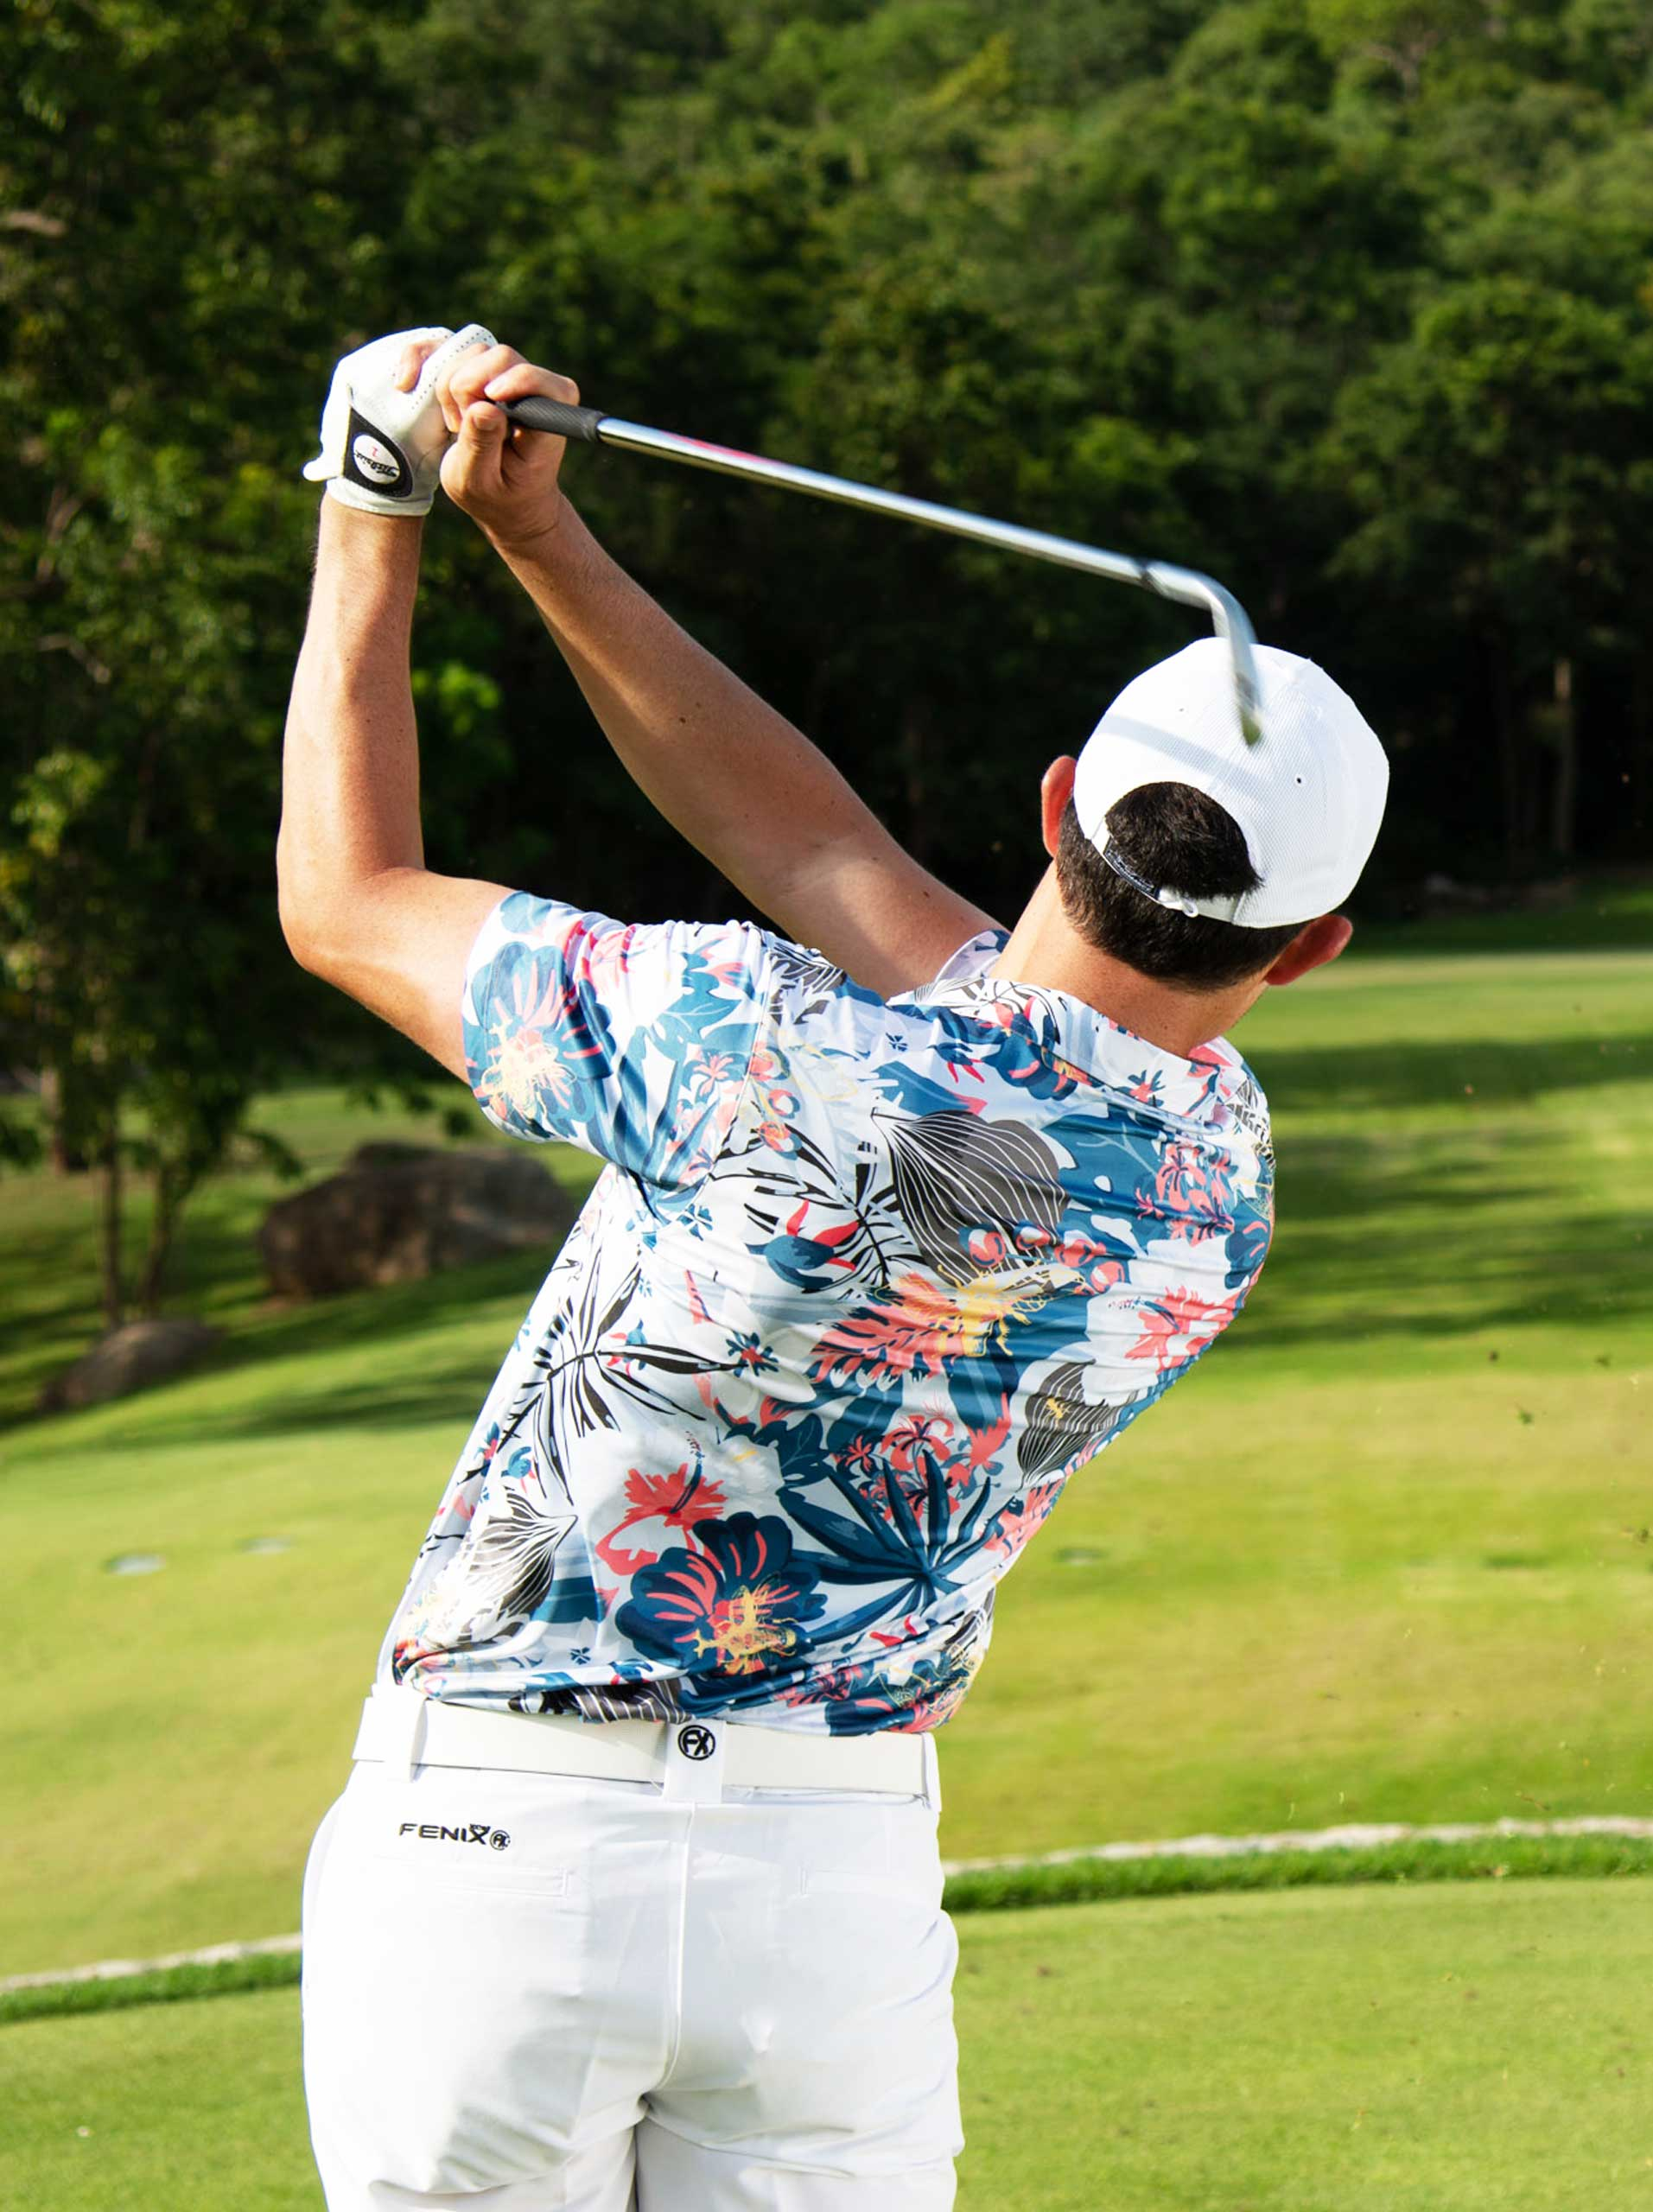 Golfer follow through wearing Fenix XCell tropical collection golf polo shirt and white Fenix XCell golf shorts